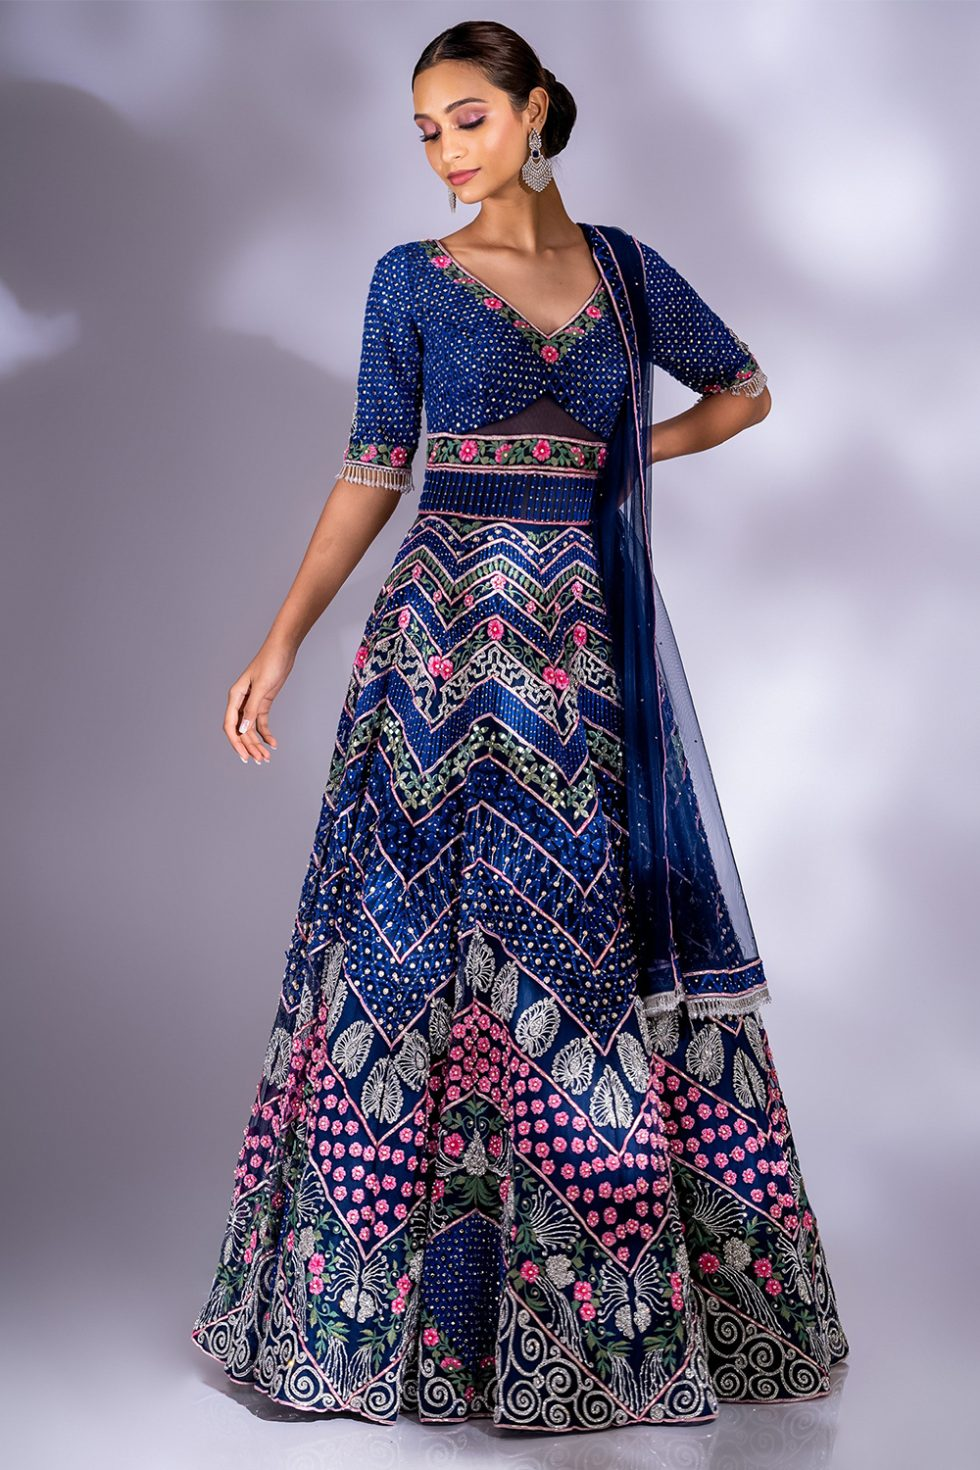 Navy blue gown set with multicoloured embroidery, silver embellishments and a matching dupatta with tassels.